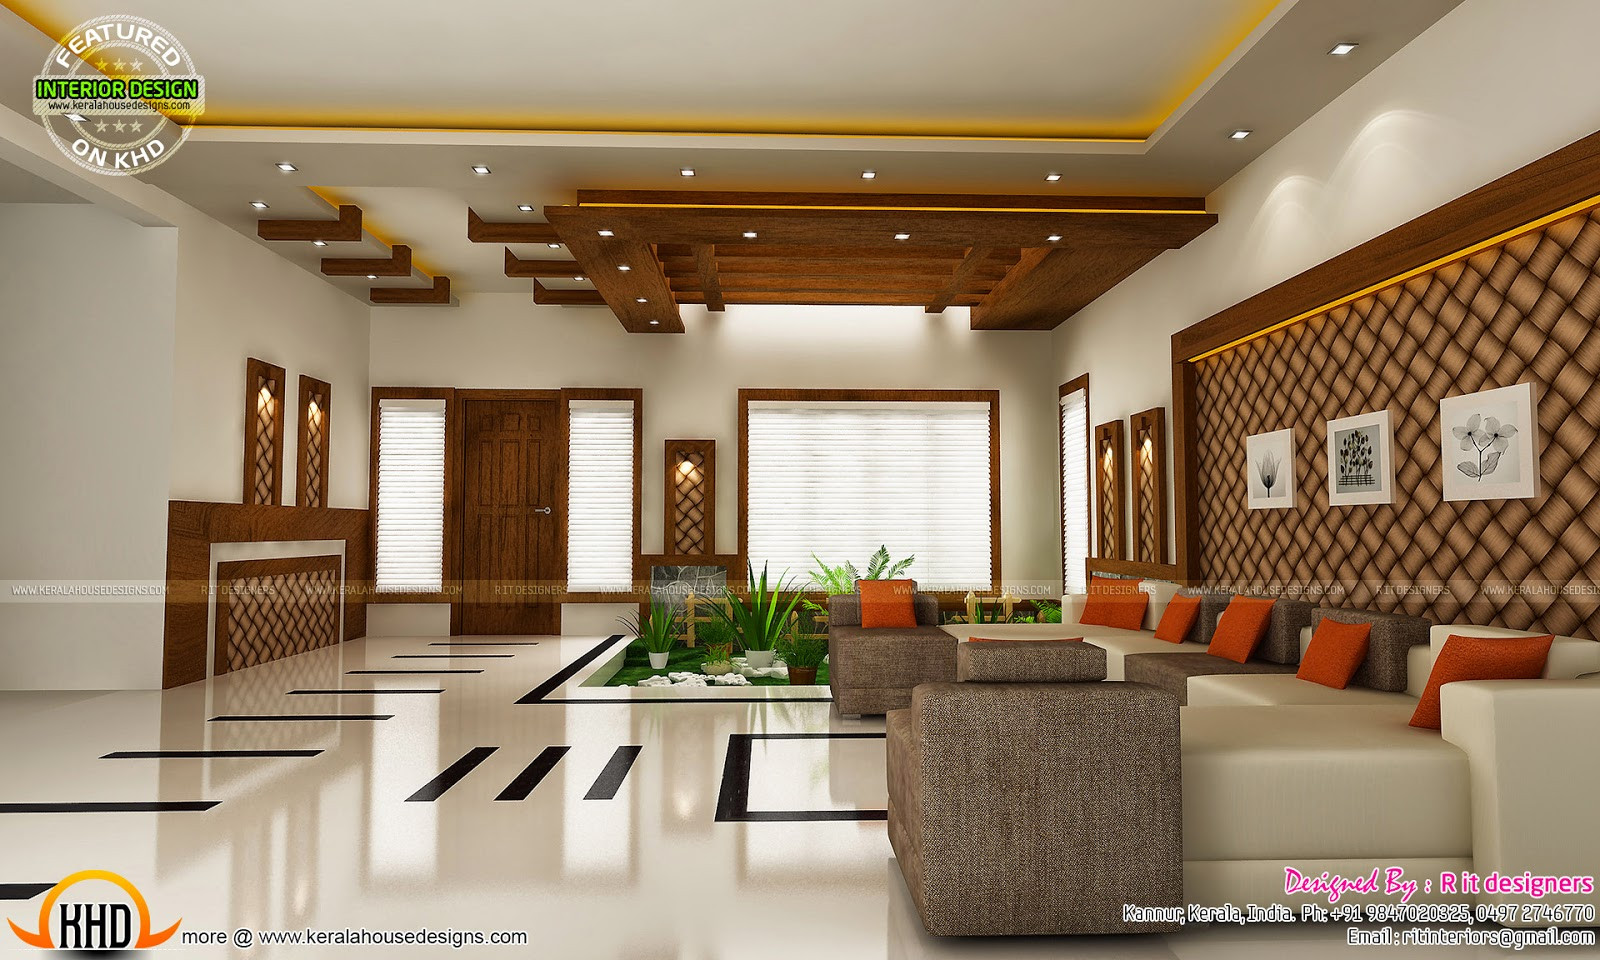 Open floor plan house designs interior design for House designs interior